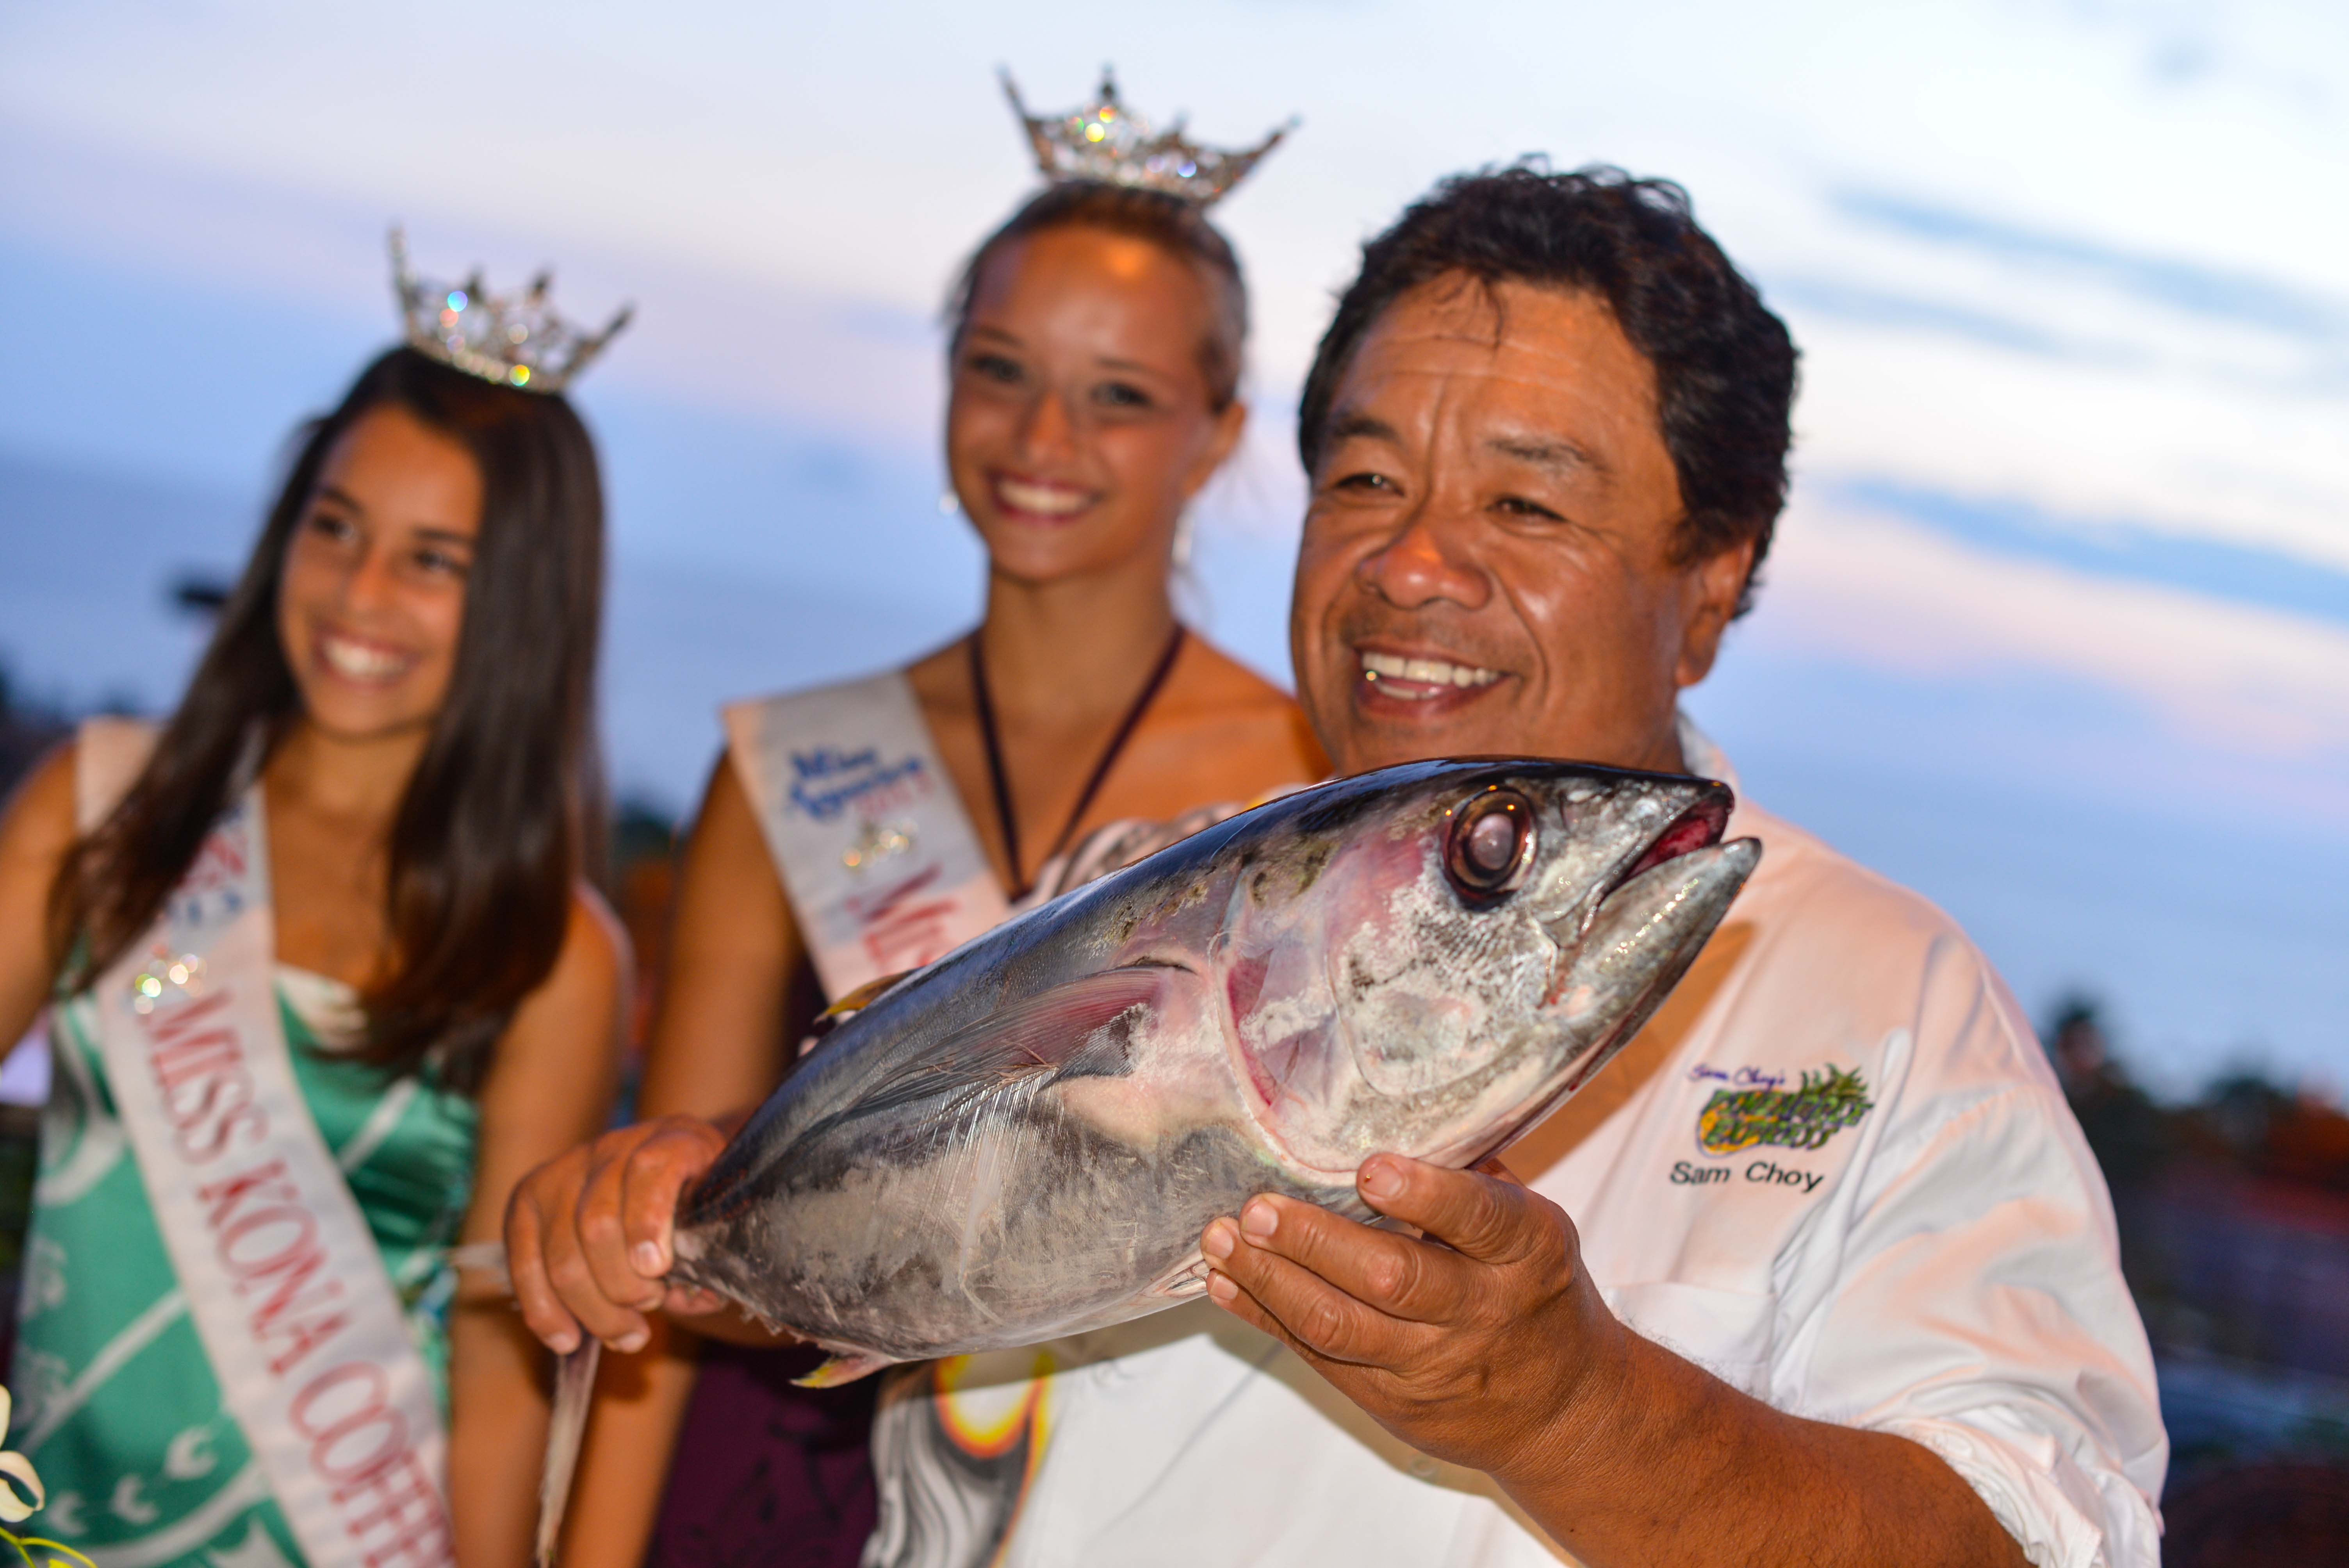 Sam-Choy-loves-the-local-yellowfin-tuna-and-demonstrated-how-to-fillet-the-whole-fish-with-Miss-Hawaii-contestants